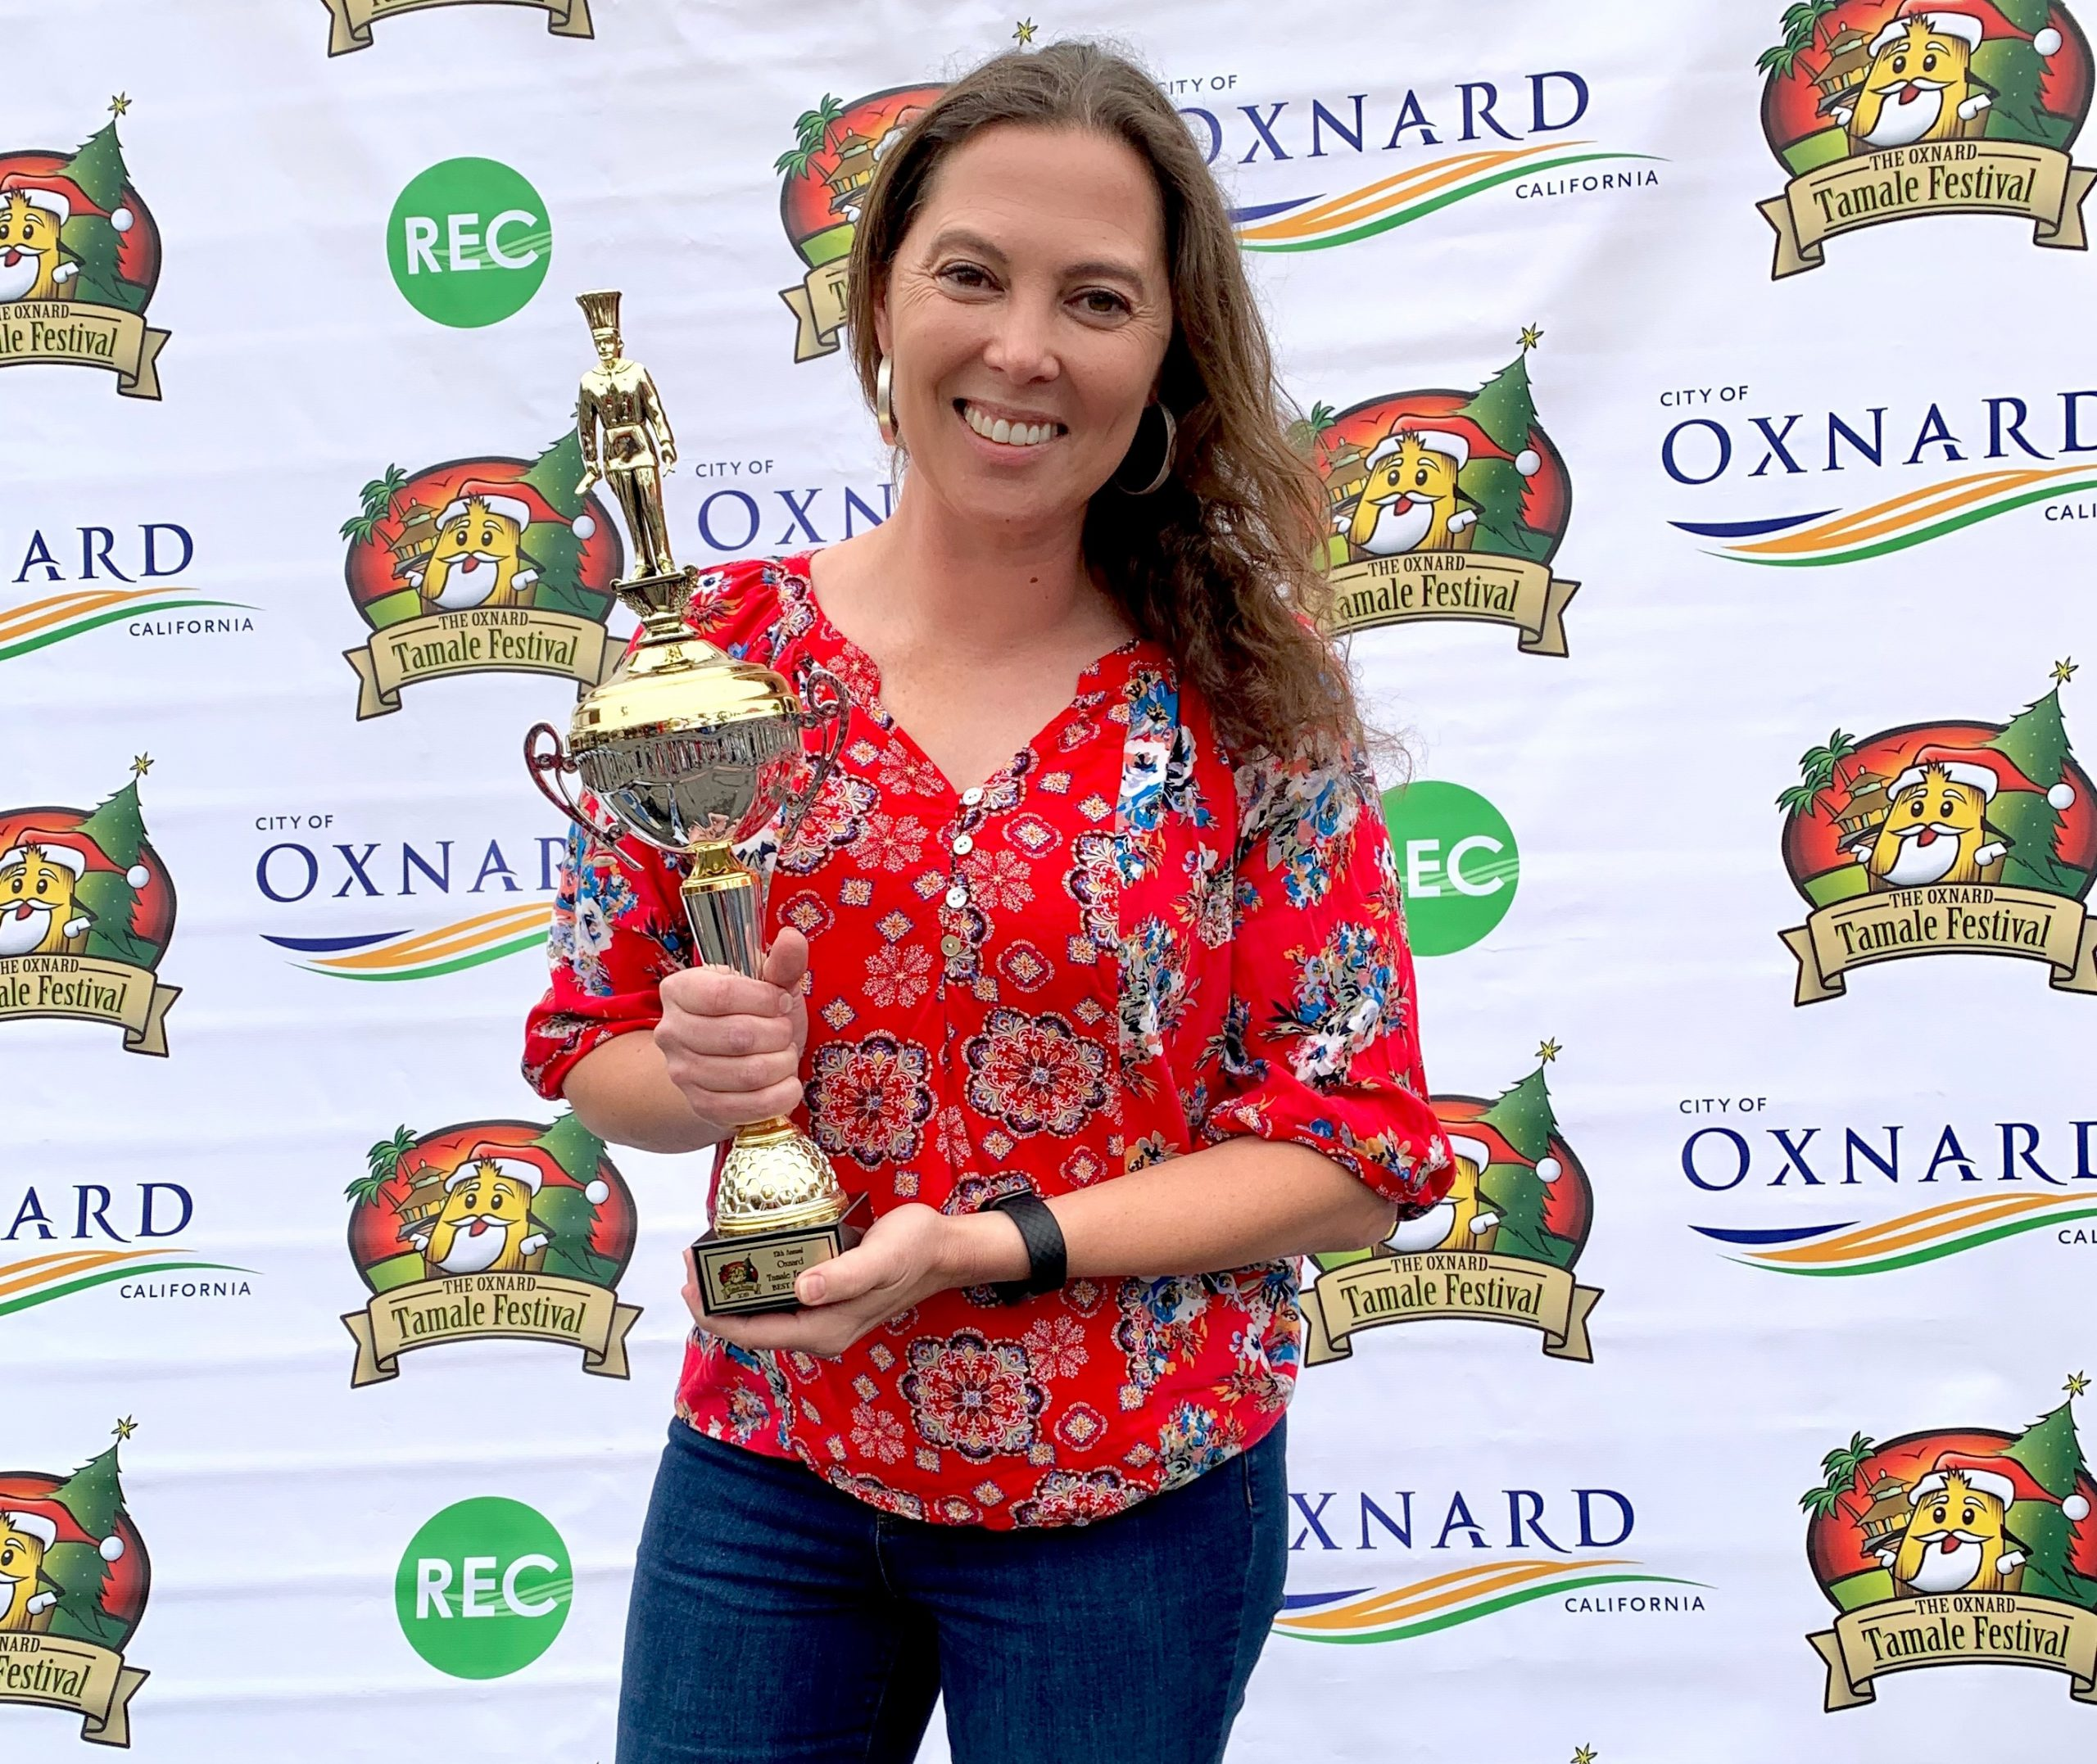 Woman smiling and holding a trophy